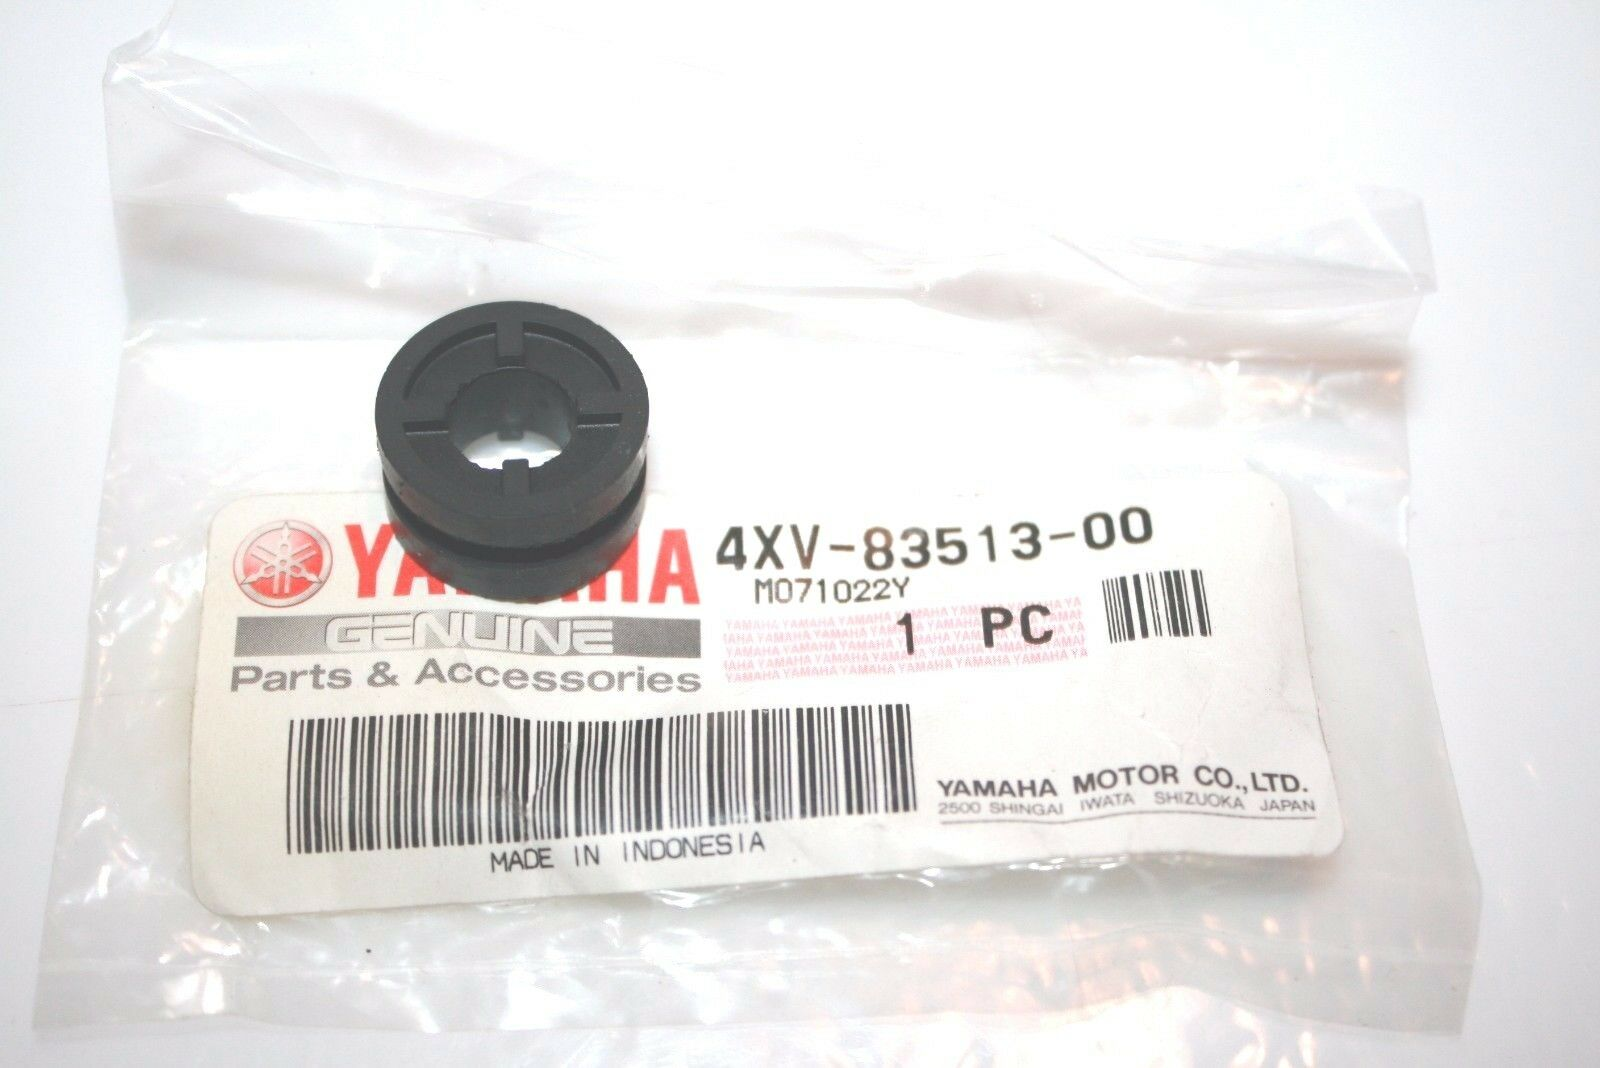 NOS YAMAHA SNOWMOBILE DAMPER RX-1 RS VECTOR TAILLIGHT METER 4XV-83513